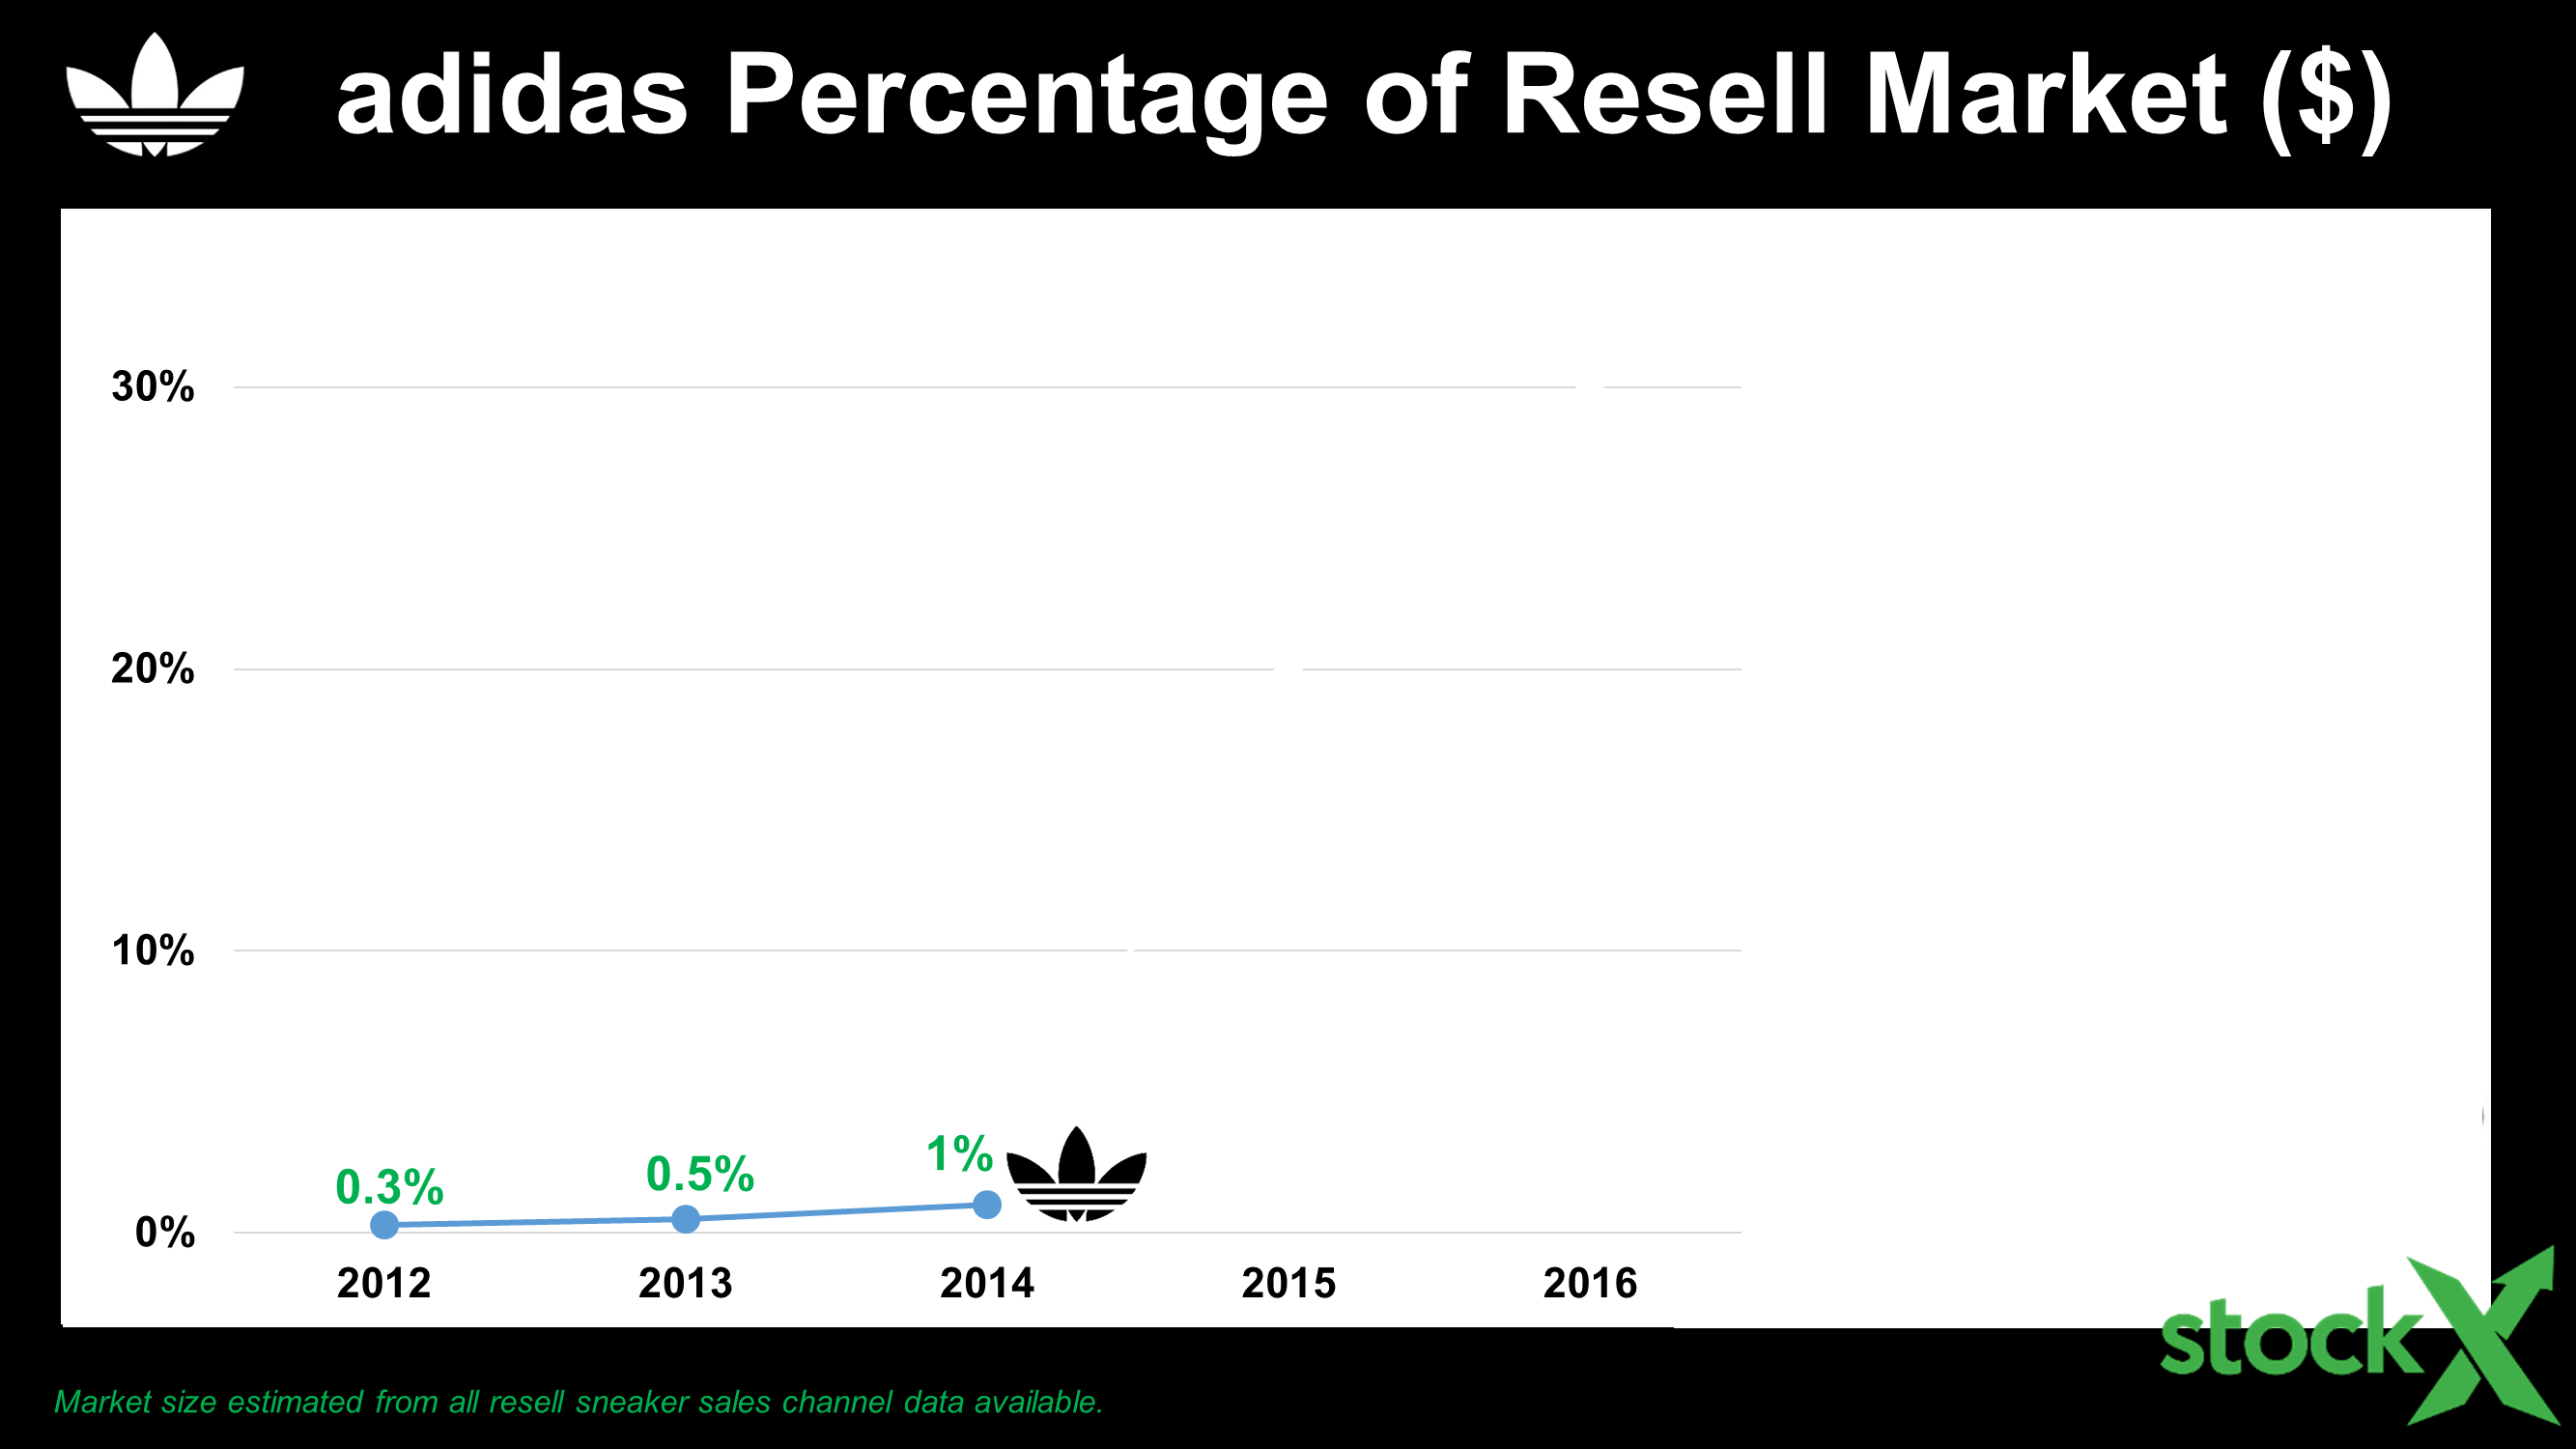 adidas percentage of resell market 2012-2014 line graph